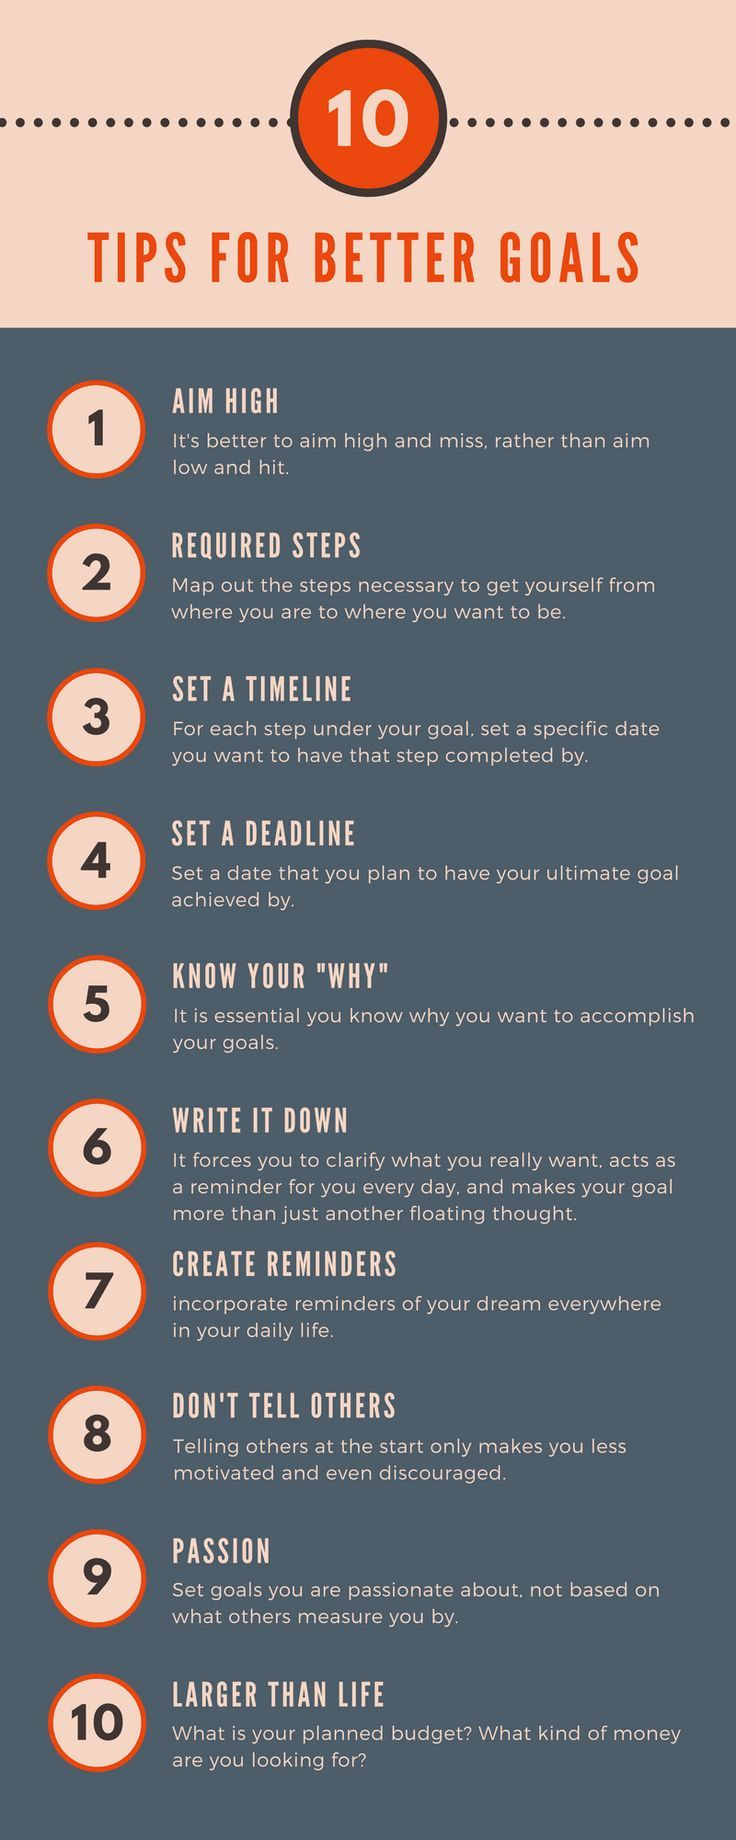 Tips to Help You Set Better Goals